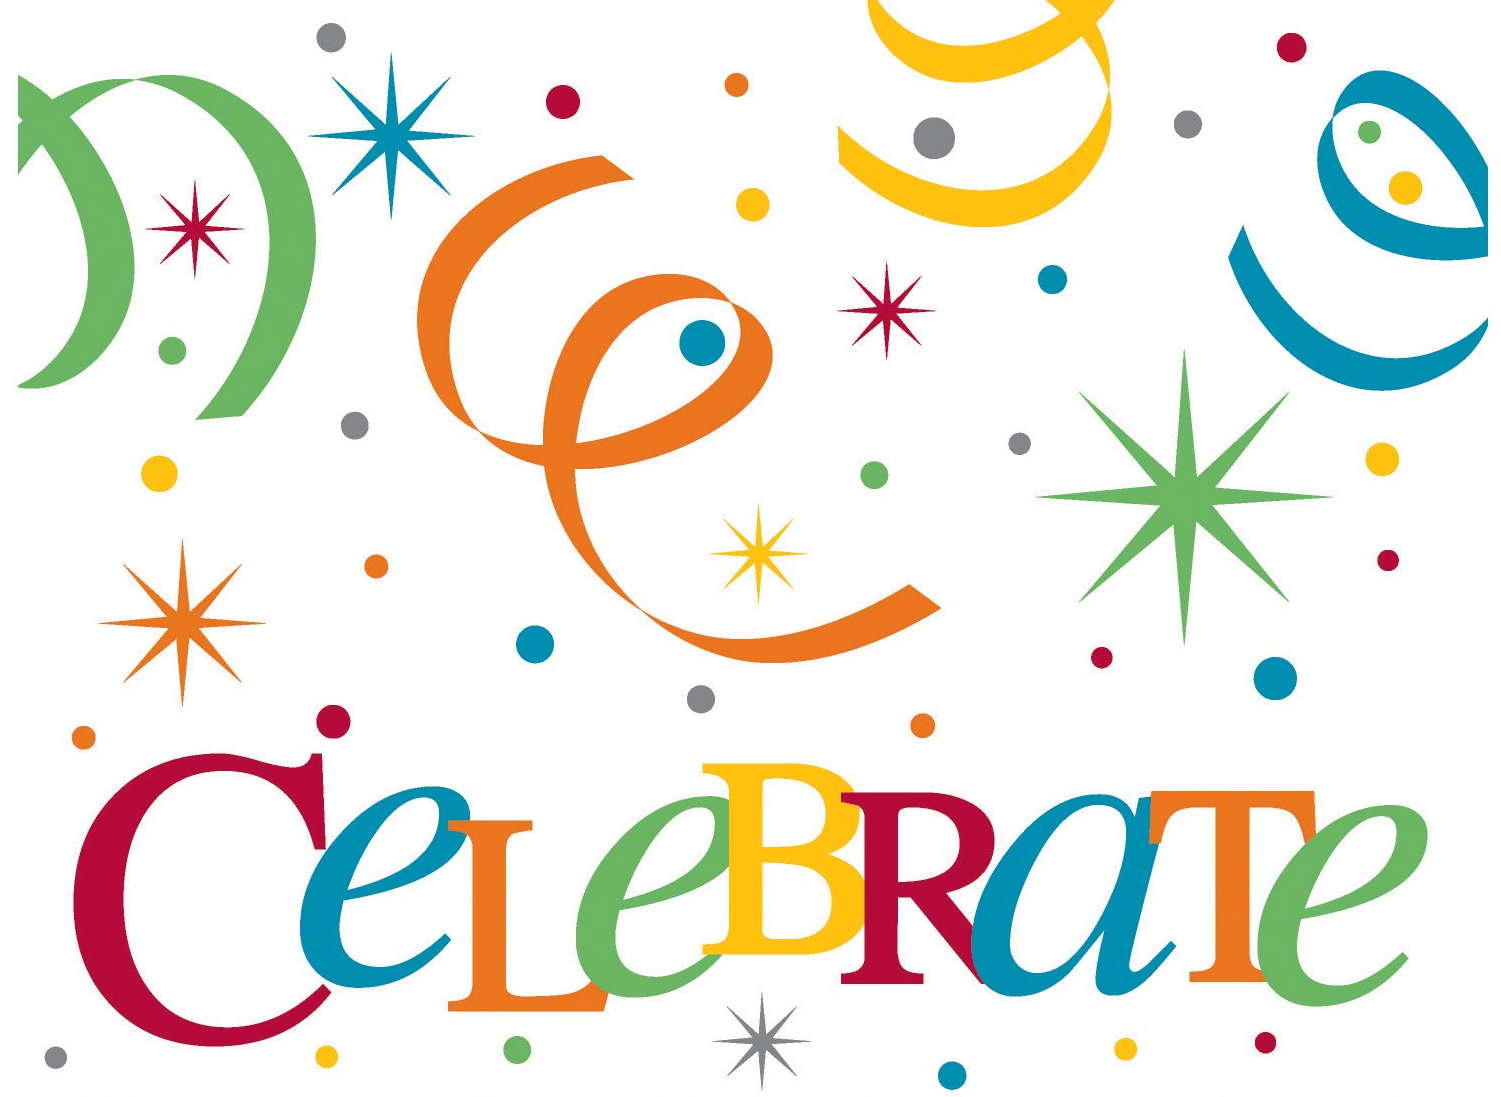 Free Celebration Clip Art Pictures - Clipartix clipart library download